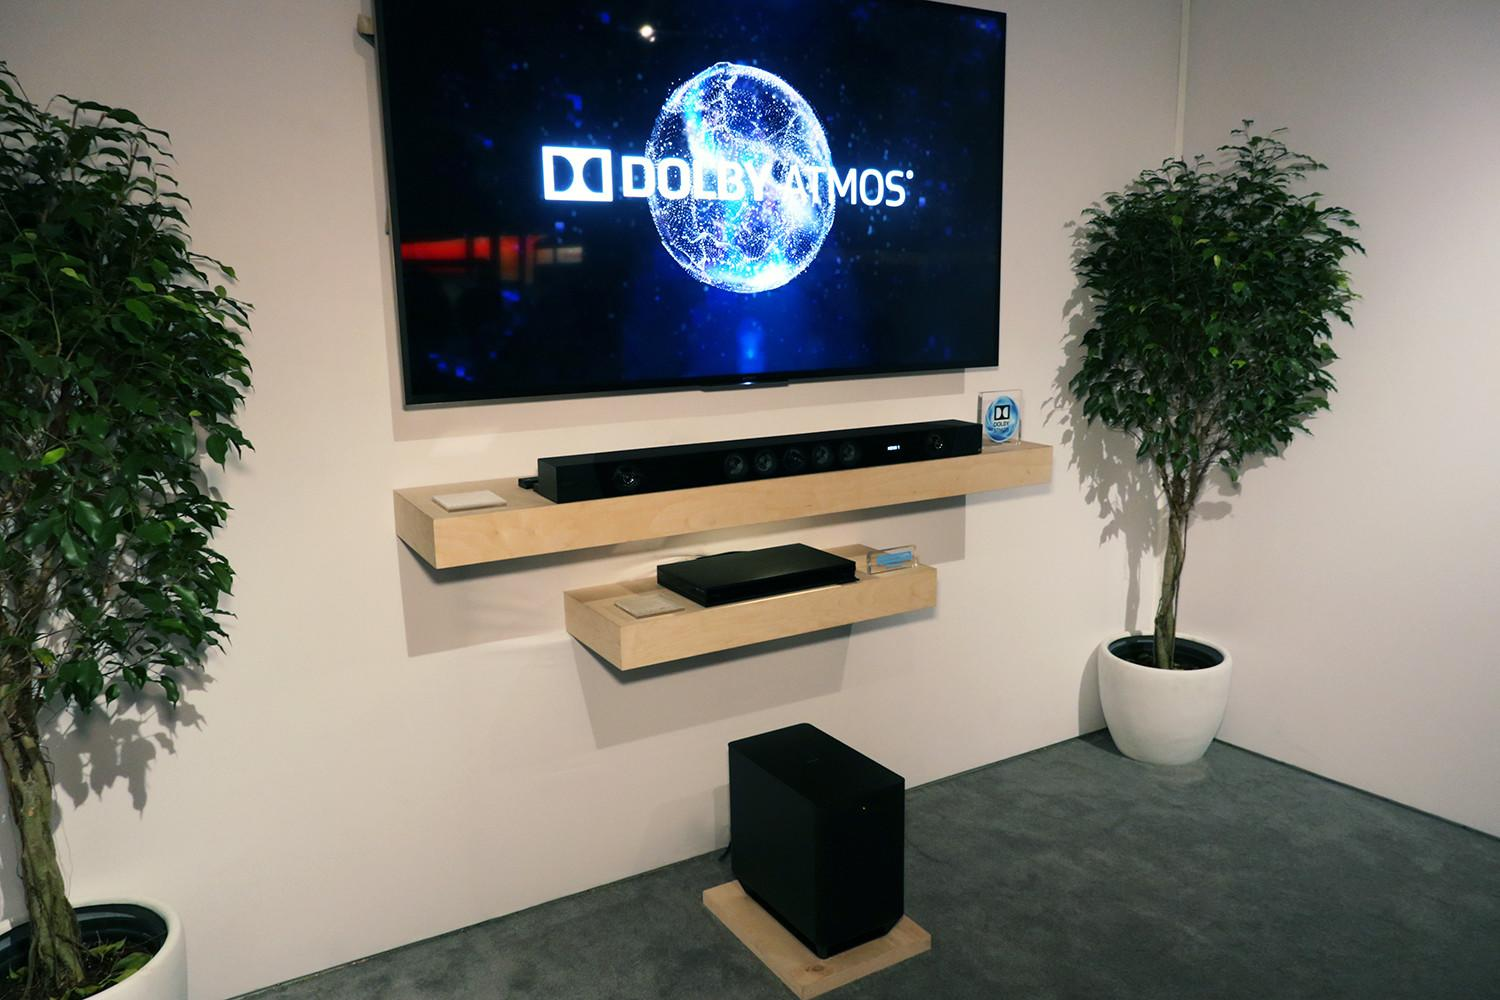 Dolby Atmos soundbars are storming 2017  Here's why you'll want one